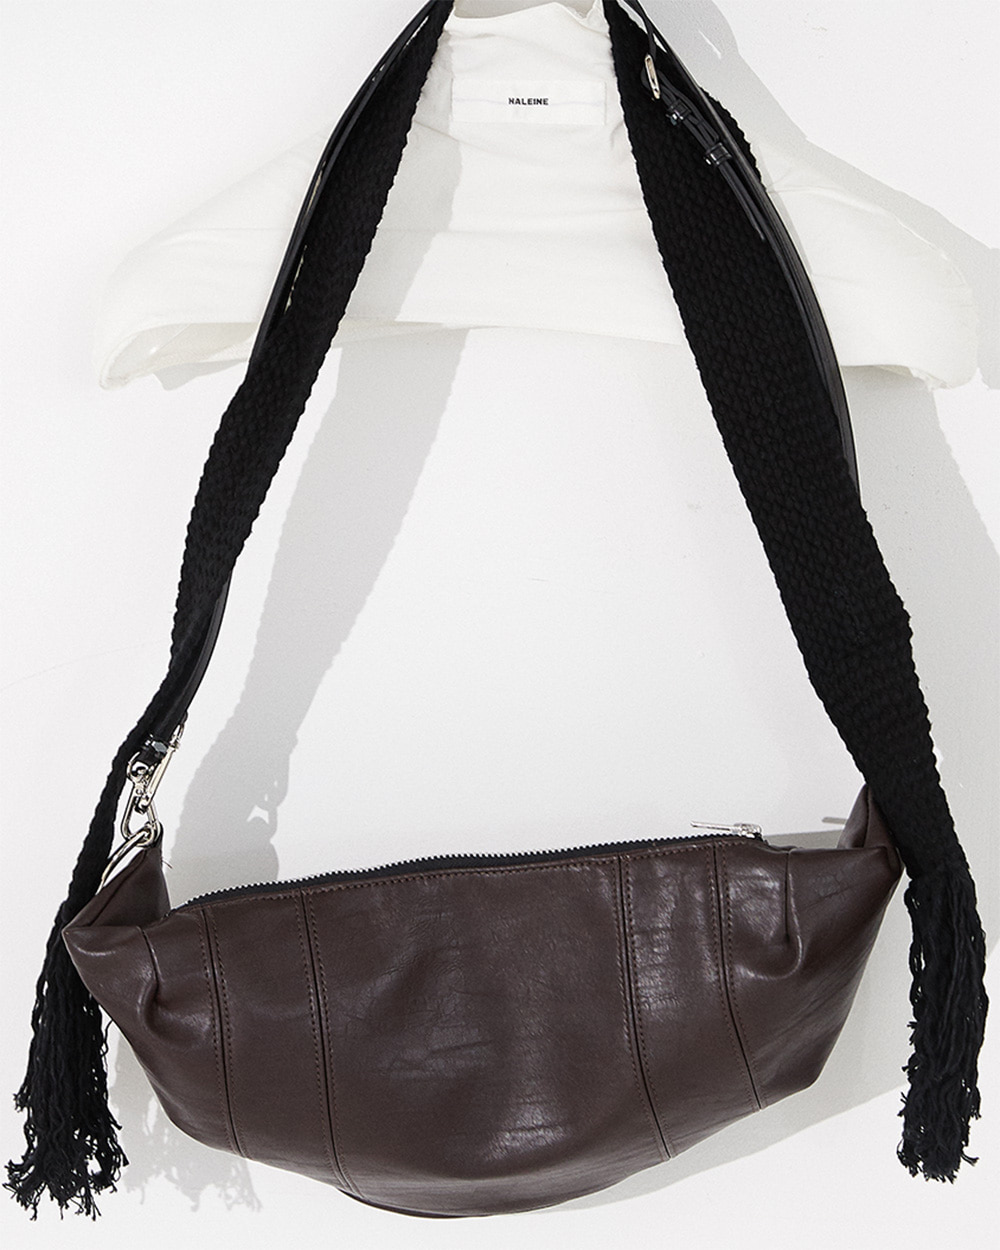 HALEINE알렌느 BROWN eco leather tassle cross bag(NA006)